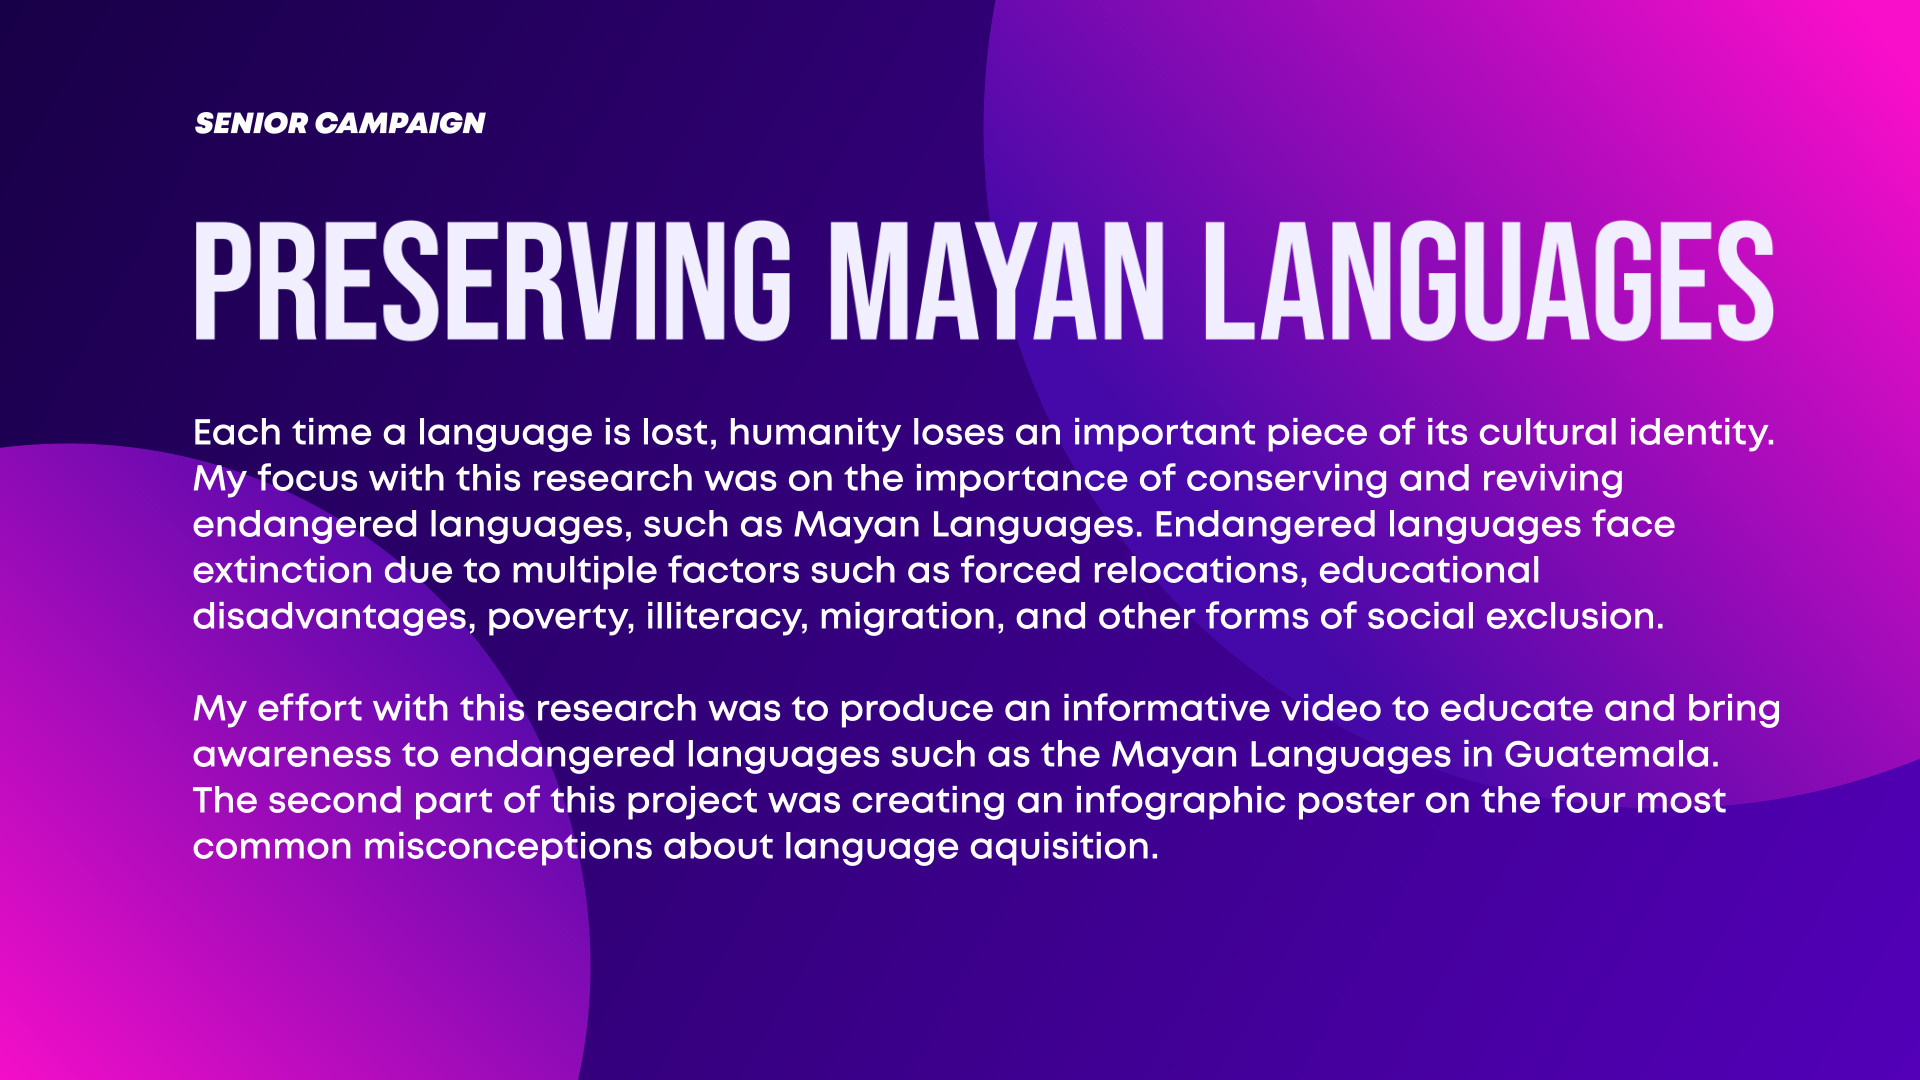 Senior Campaign: Preserving Mayan Languages